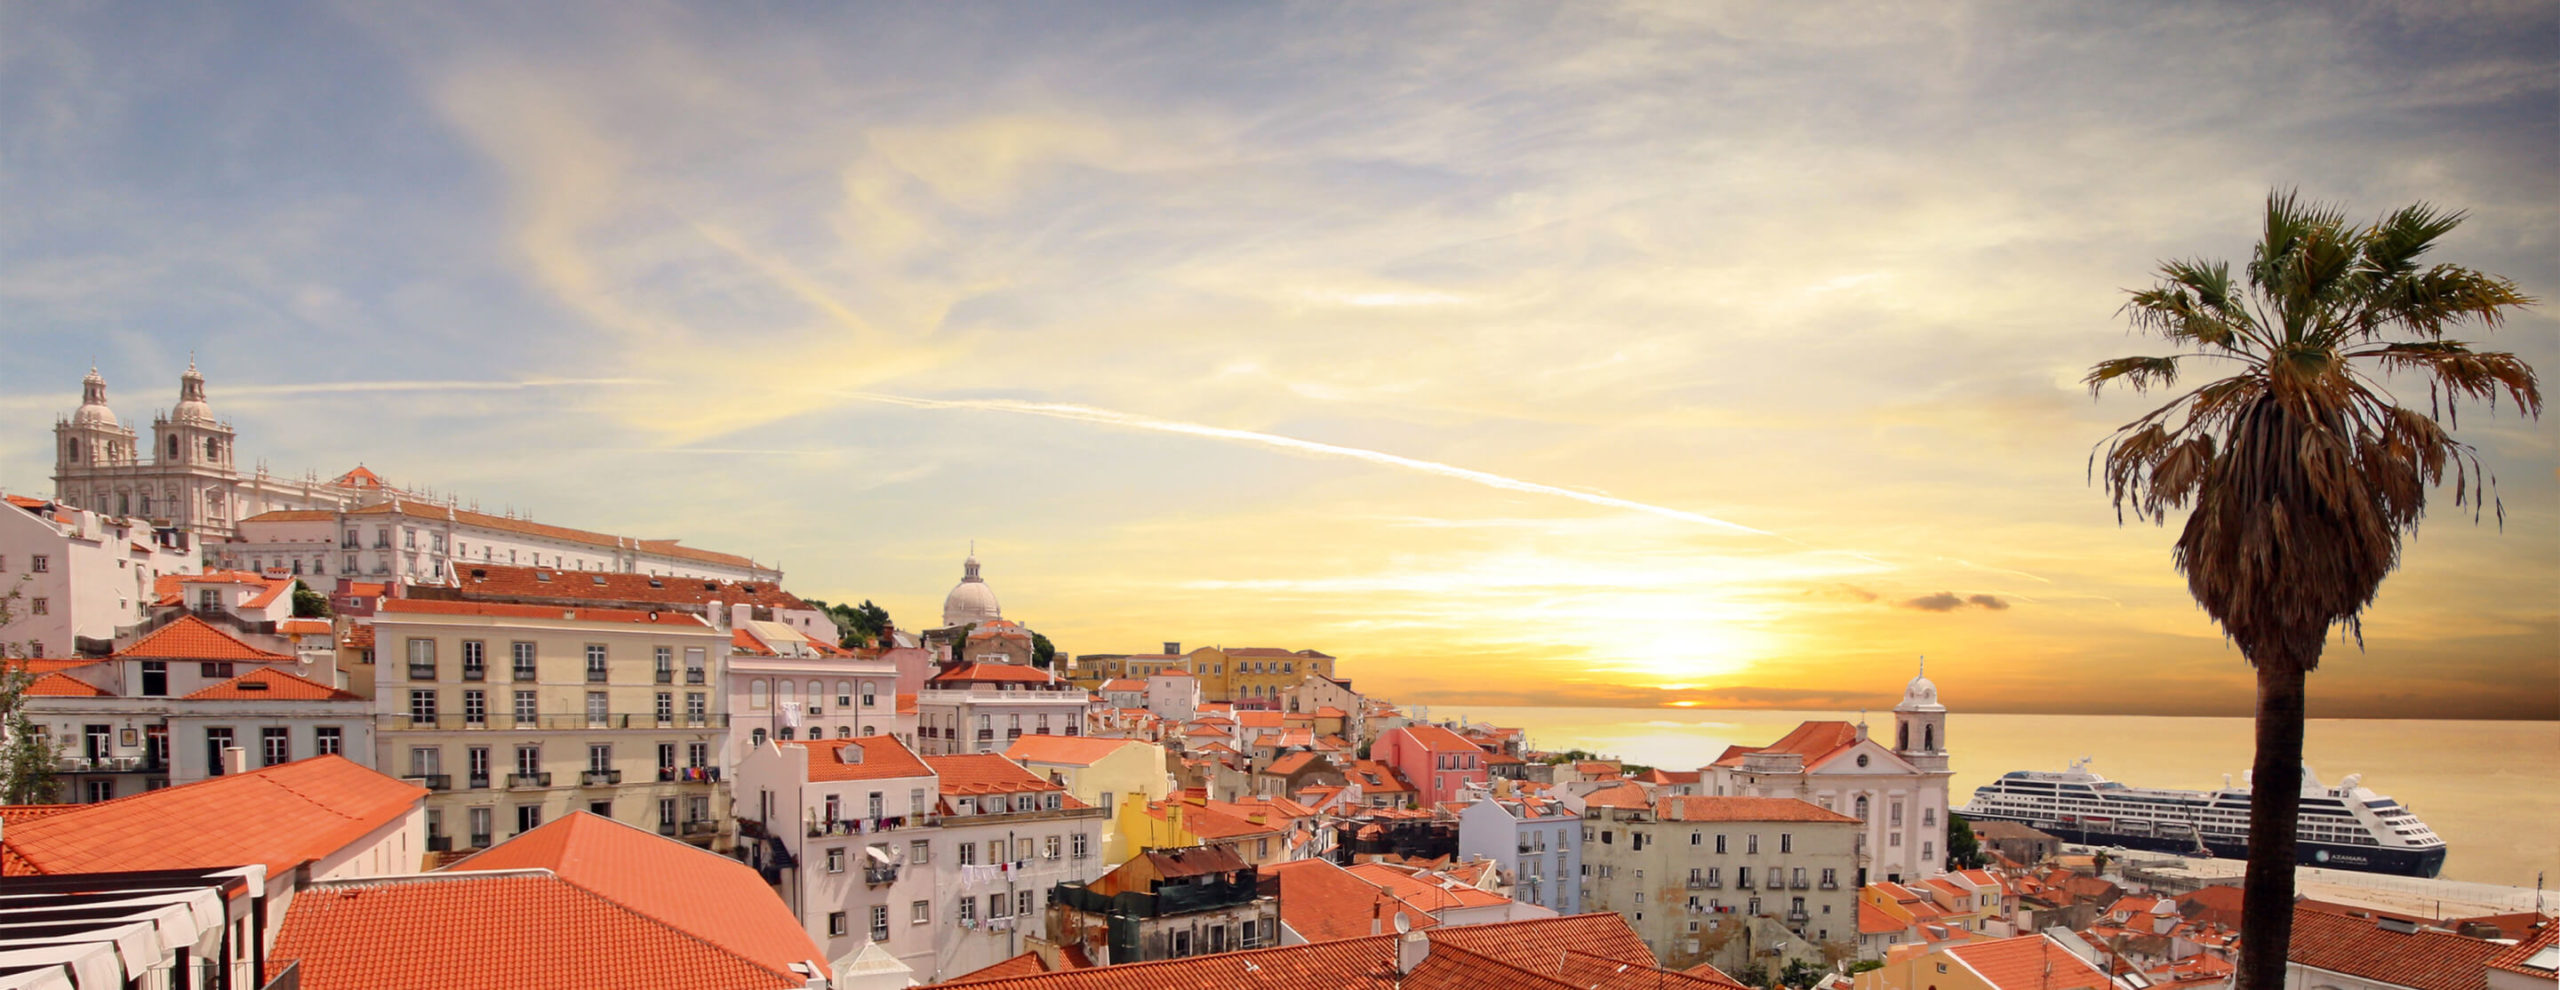 Portugal Citizenship by Investment: Benefits of Applying for the Golden Visa in Portugal